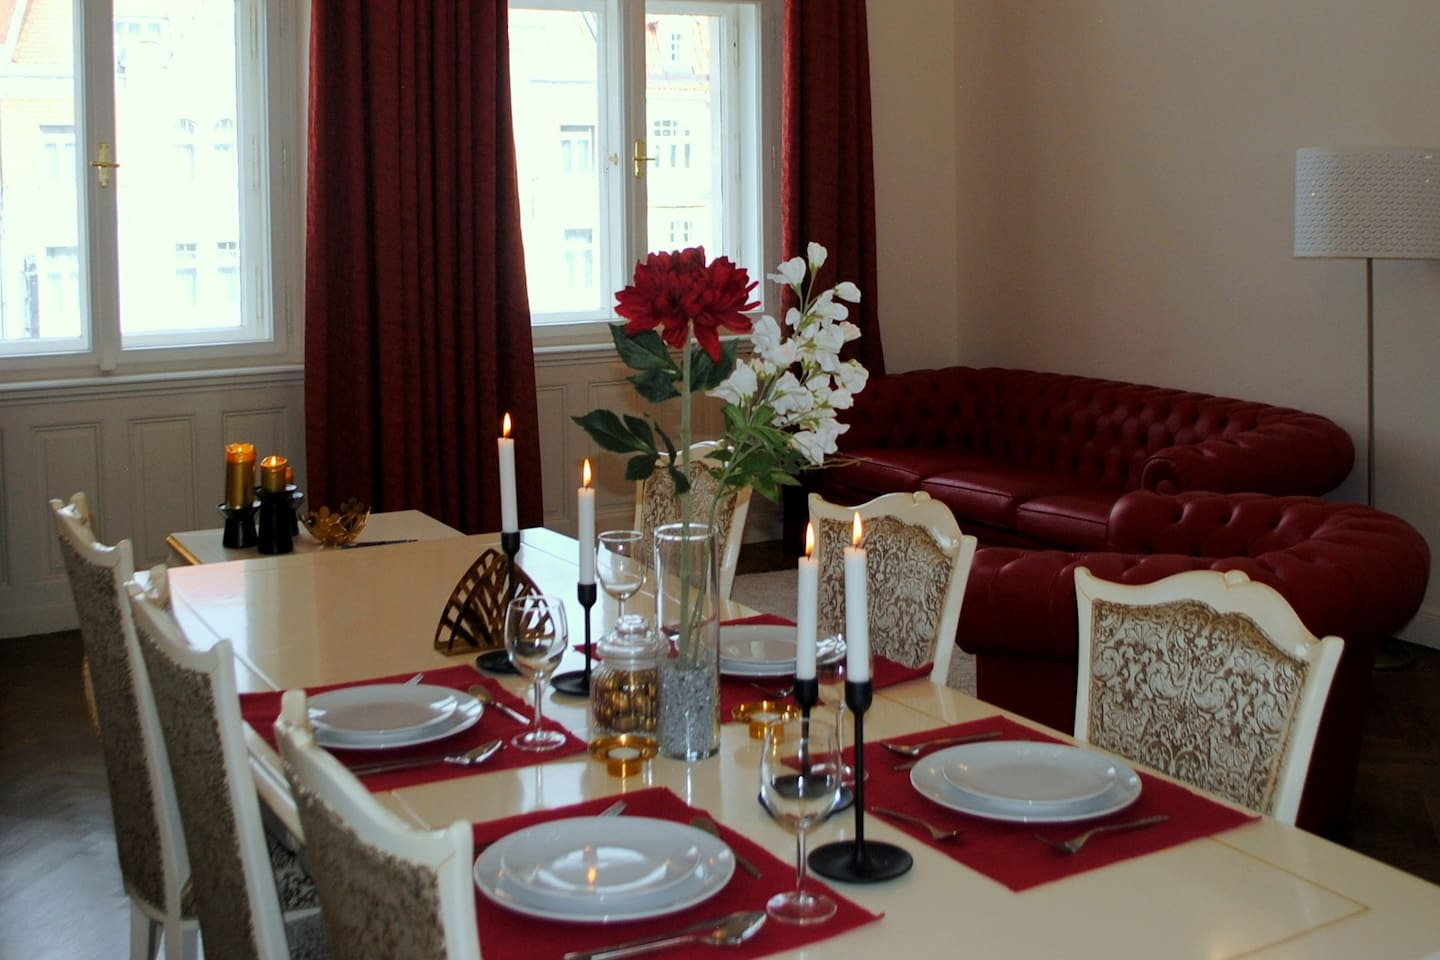 Living room with large dining table for 6, seating corner. All amenities required for a stylish dining or socializing setup are available